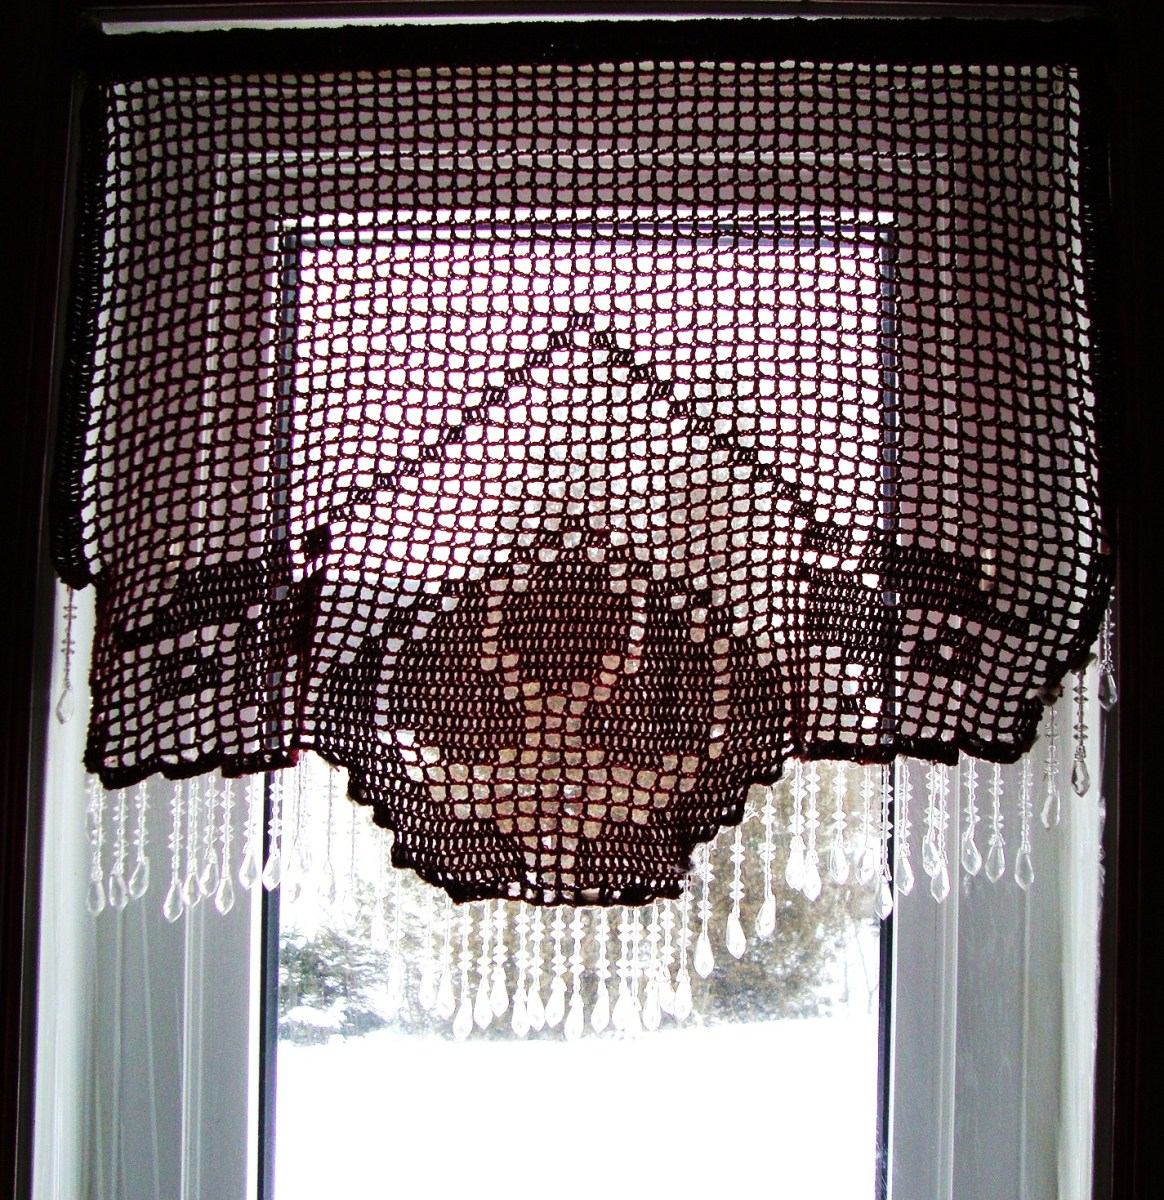 Image: Crocheted Valance with Crystals